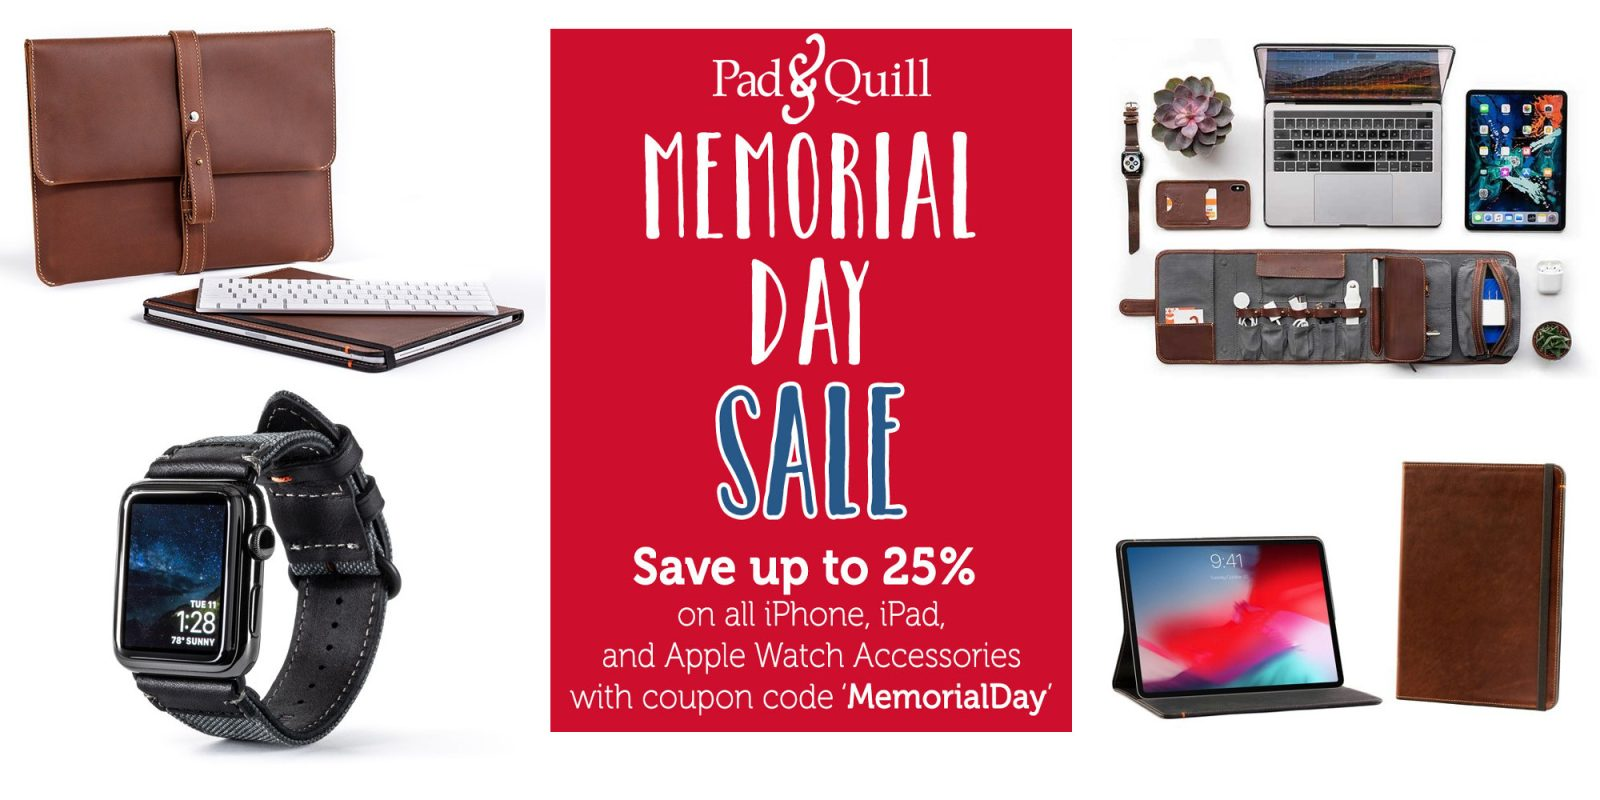 Pad & Quill Memorial Day iOS Accessories Sale up to 25% off: Cases, folios, more